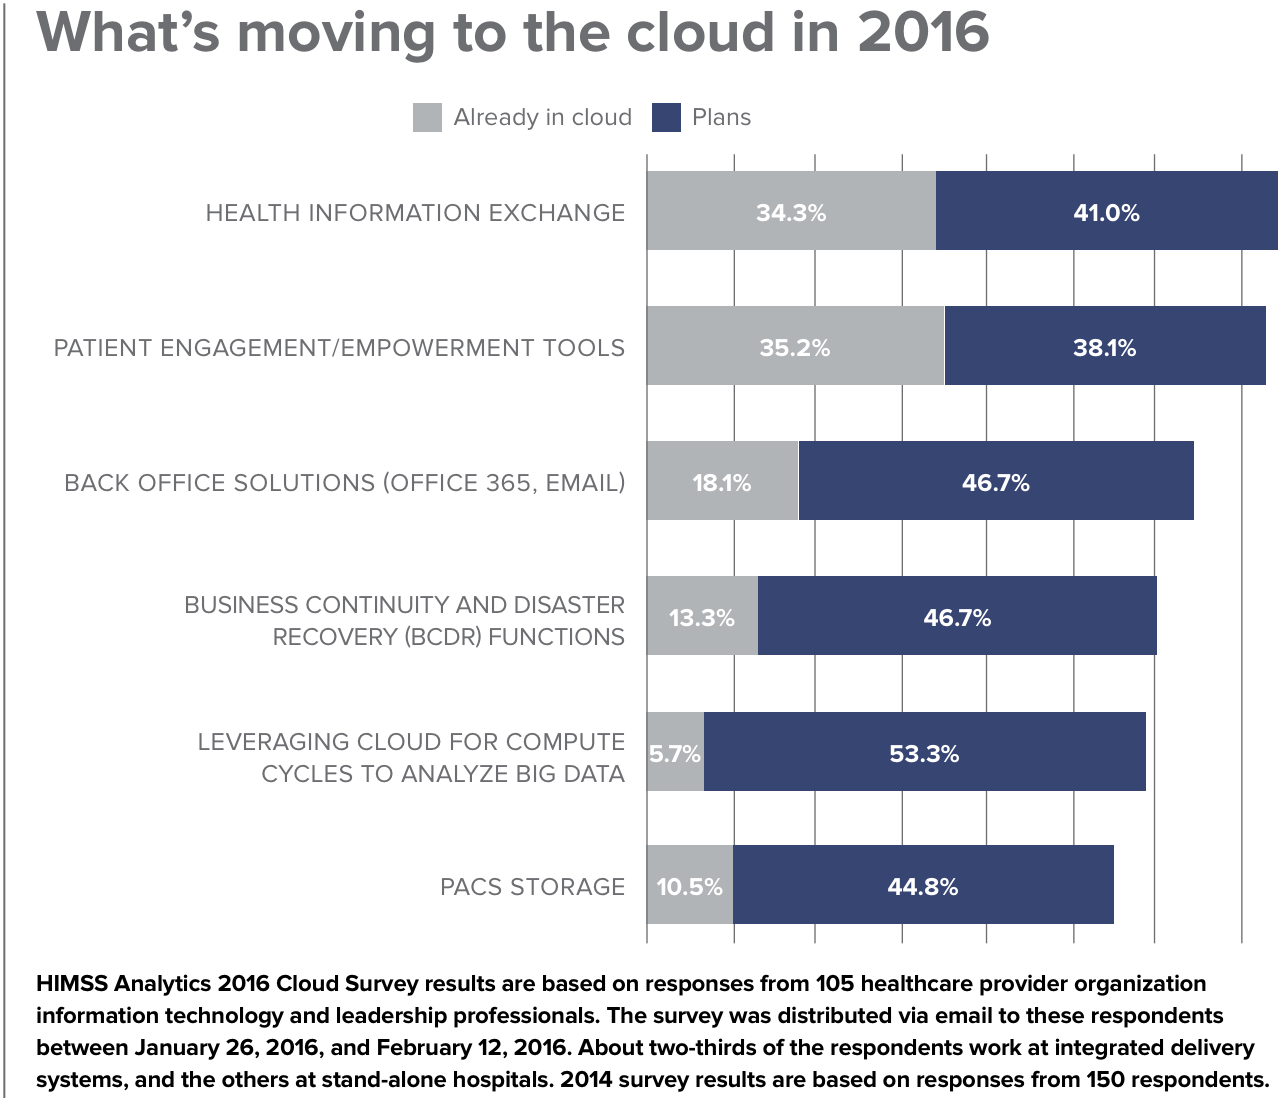 Healthcare is moving to the cloud